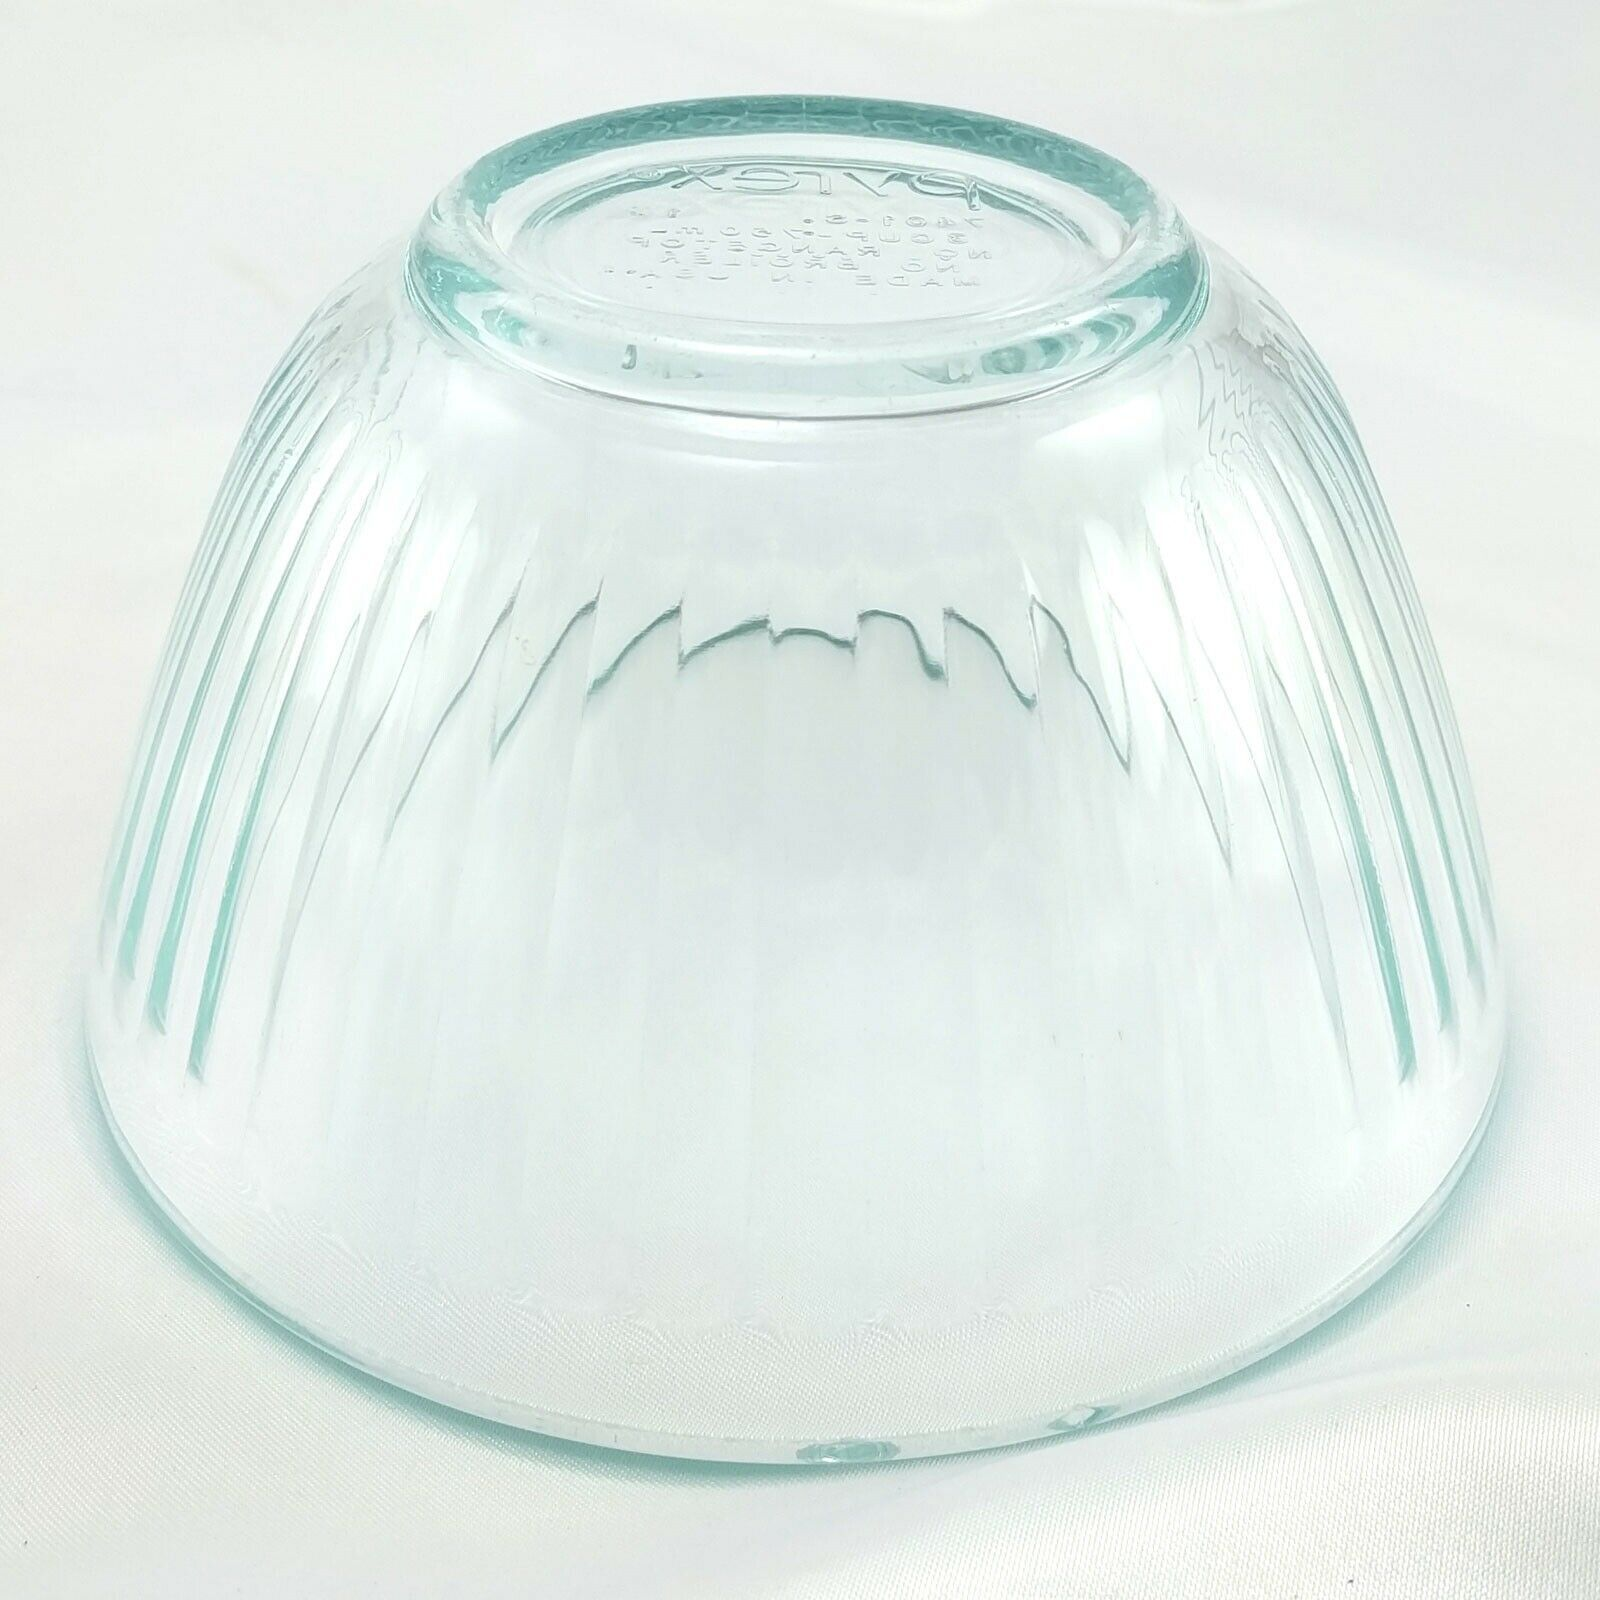 Pyrex 7401-S Ribbed Side Vintage Blue Glass Serving Bowl 3 Cup ~ CHIPPED RIM image 4